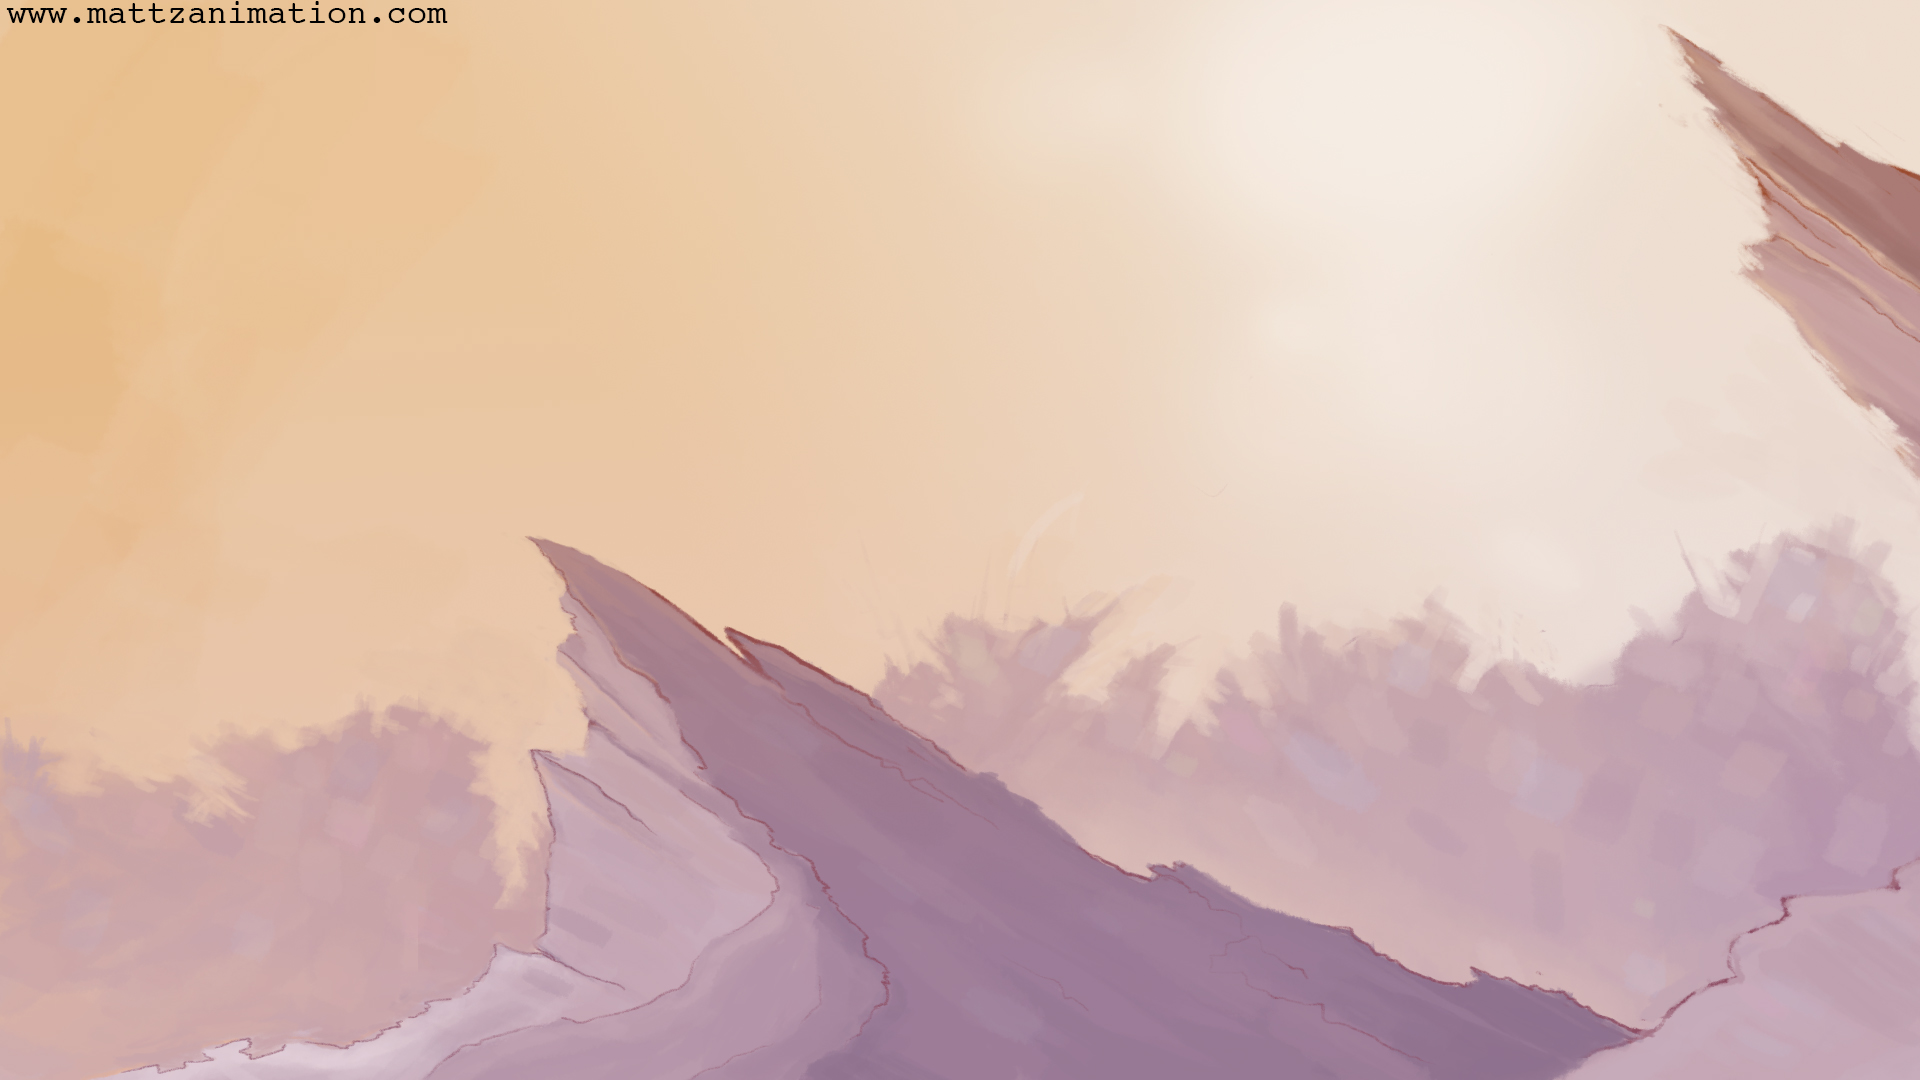 Background painting for a WIP animation project.